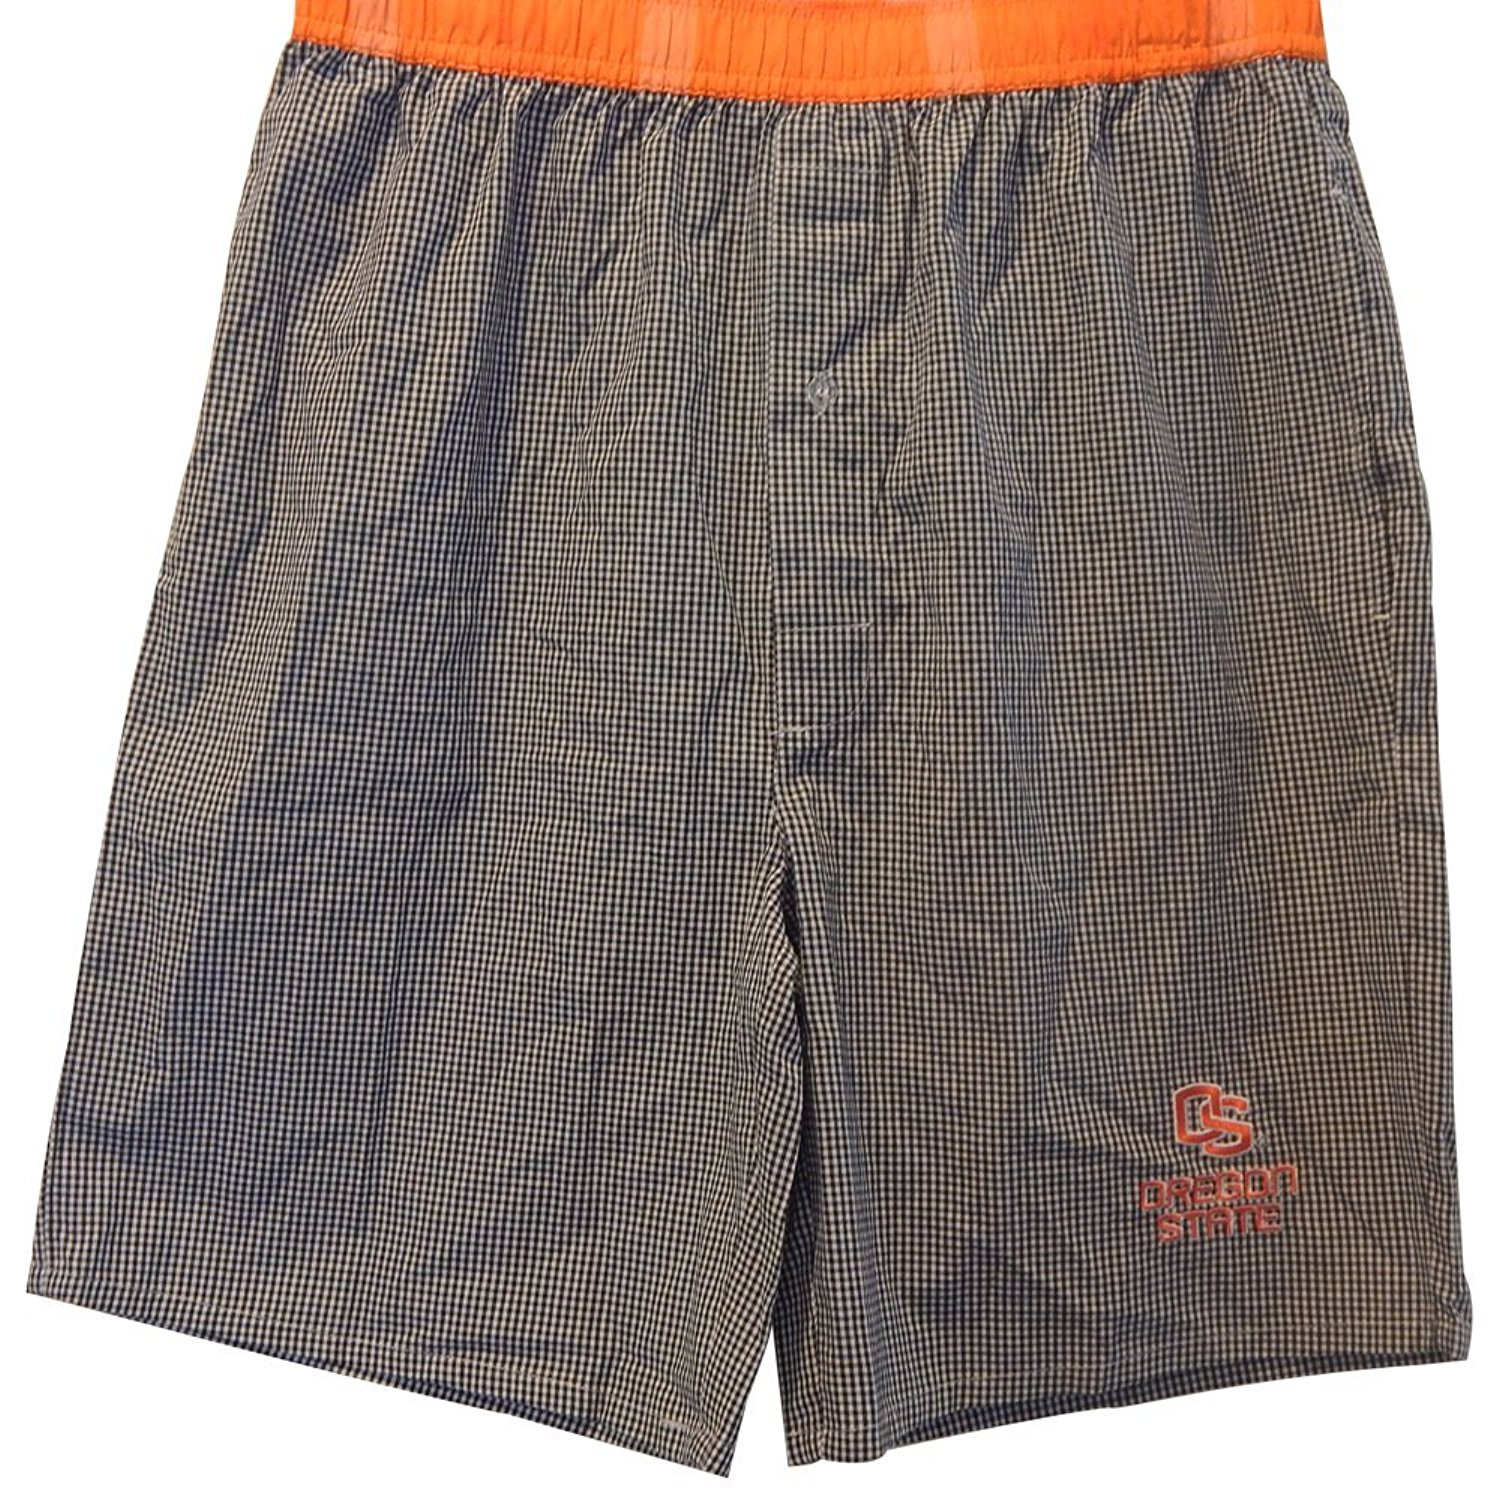 Boxer clipart board shorts Shorts Oregon State Oregon